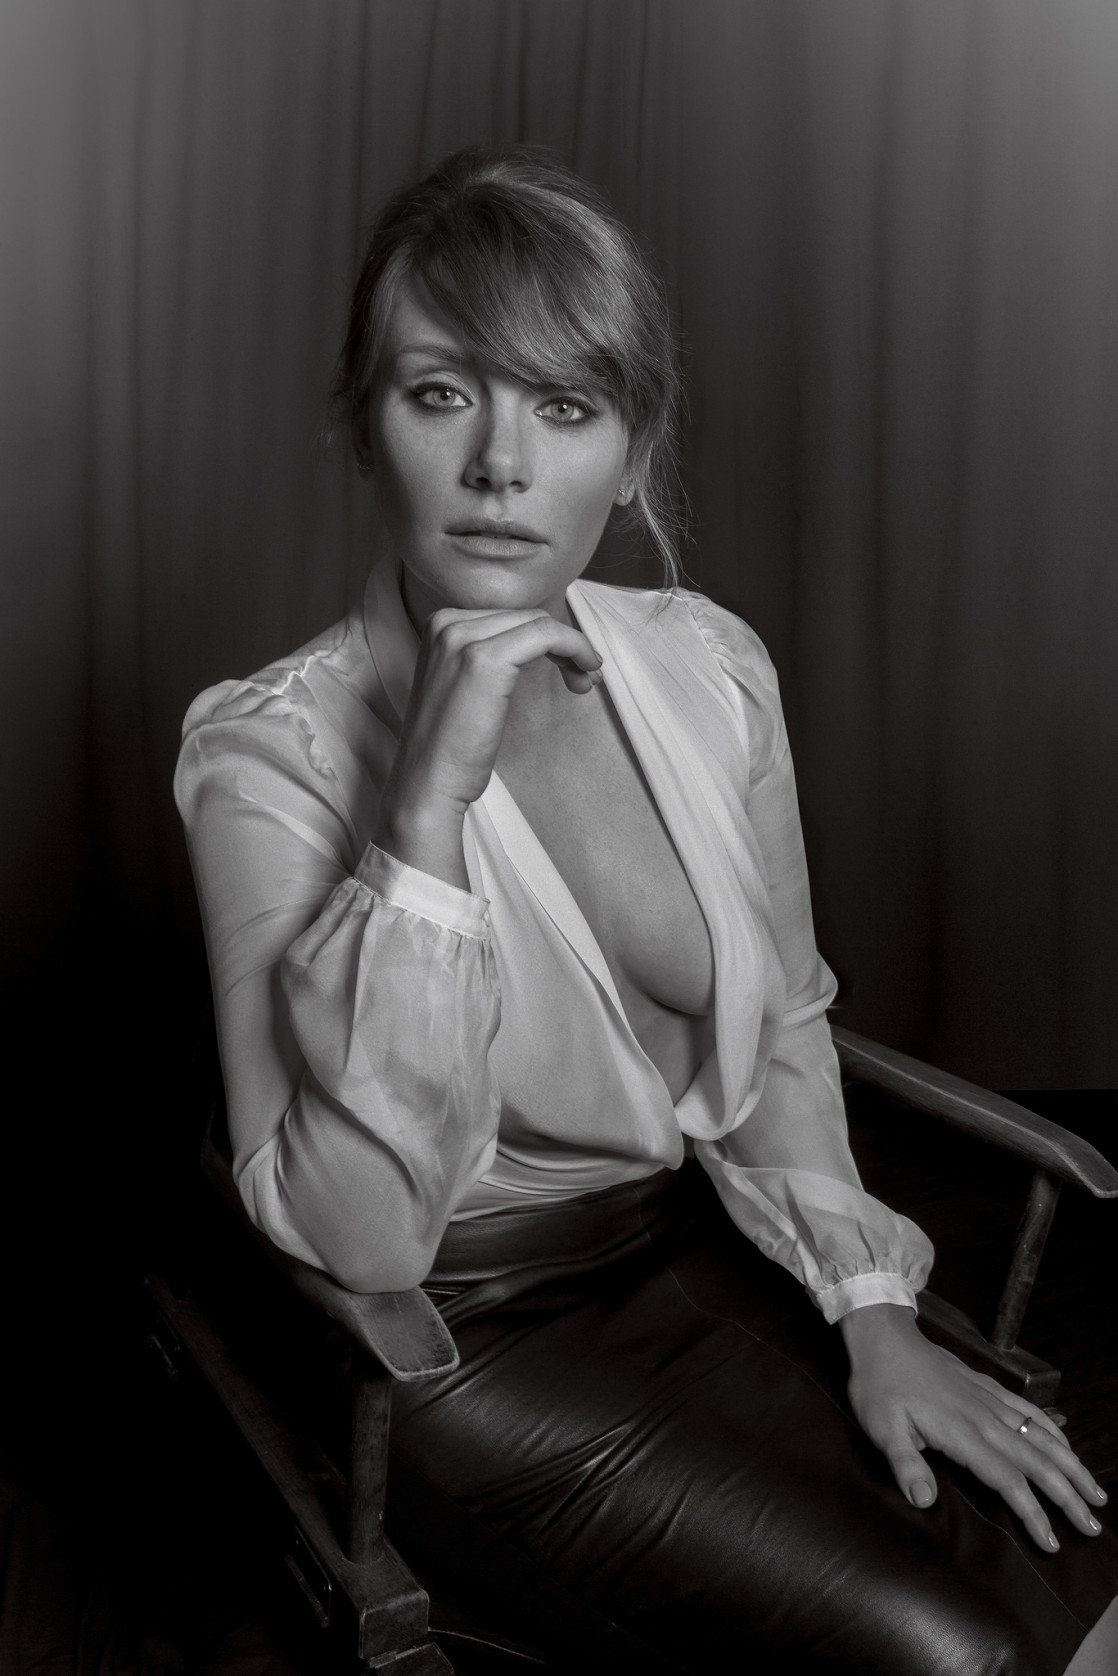 Dallas Bryce Howard